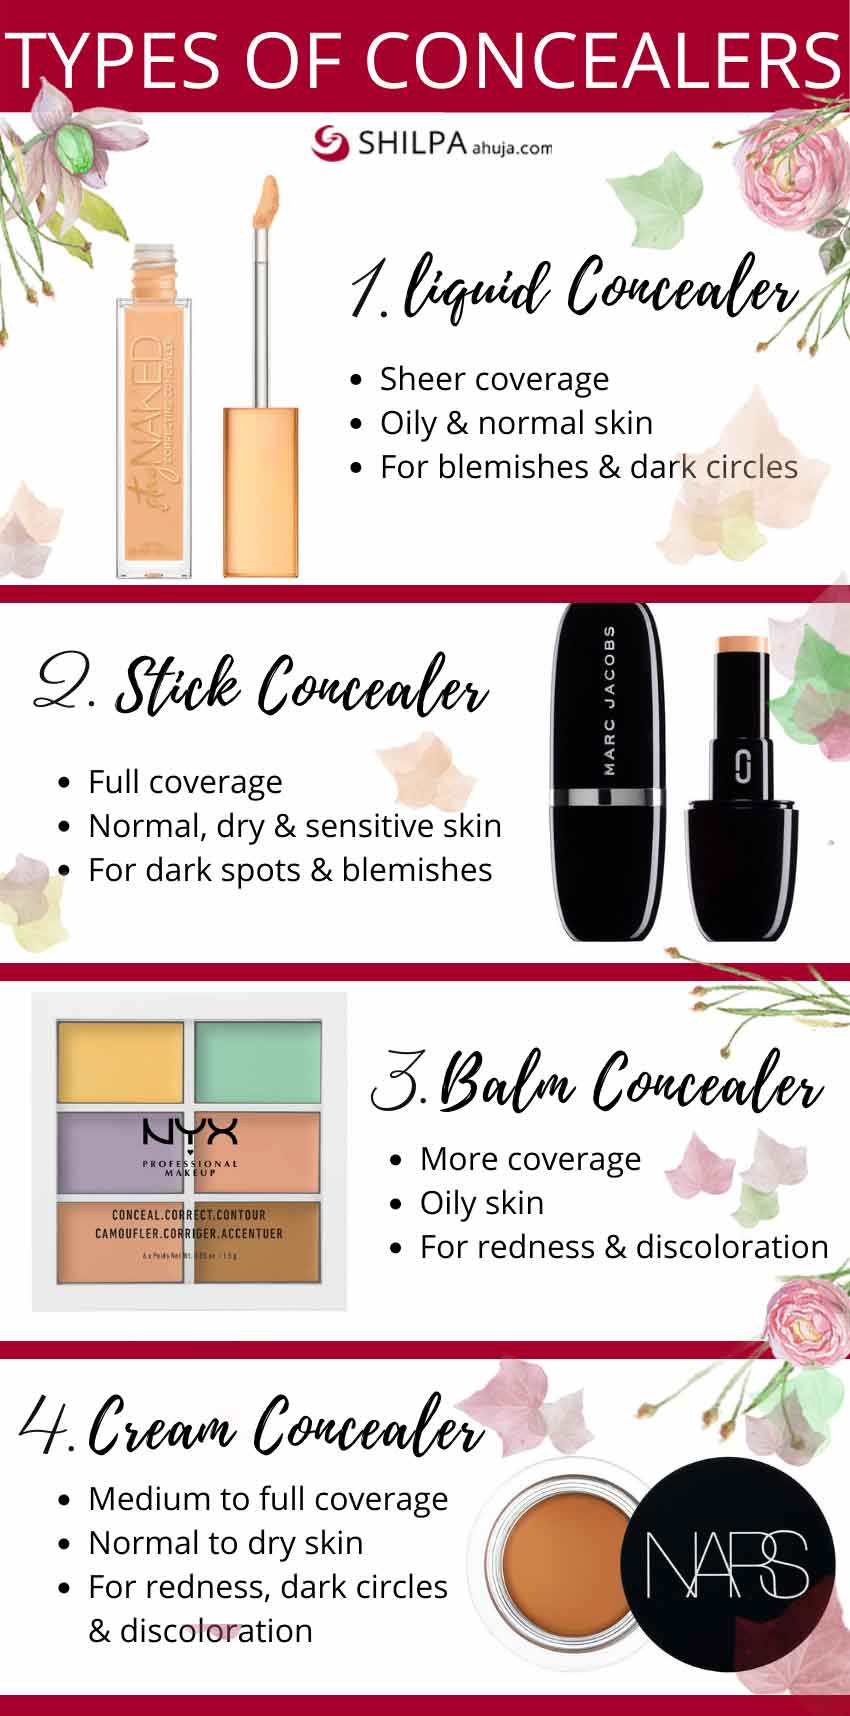 Types-of-concealers-makeup-products-how-to-choose